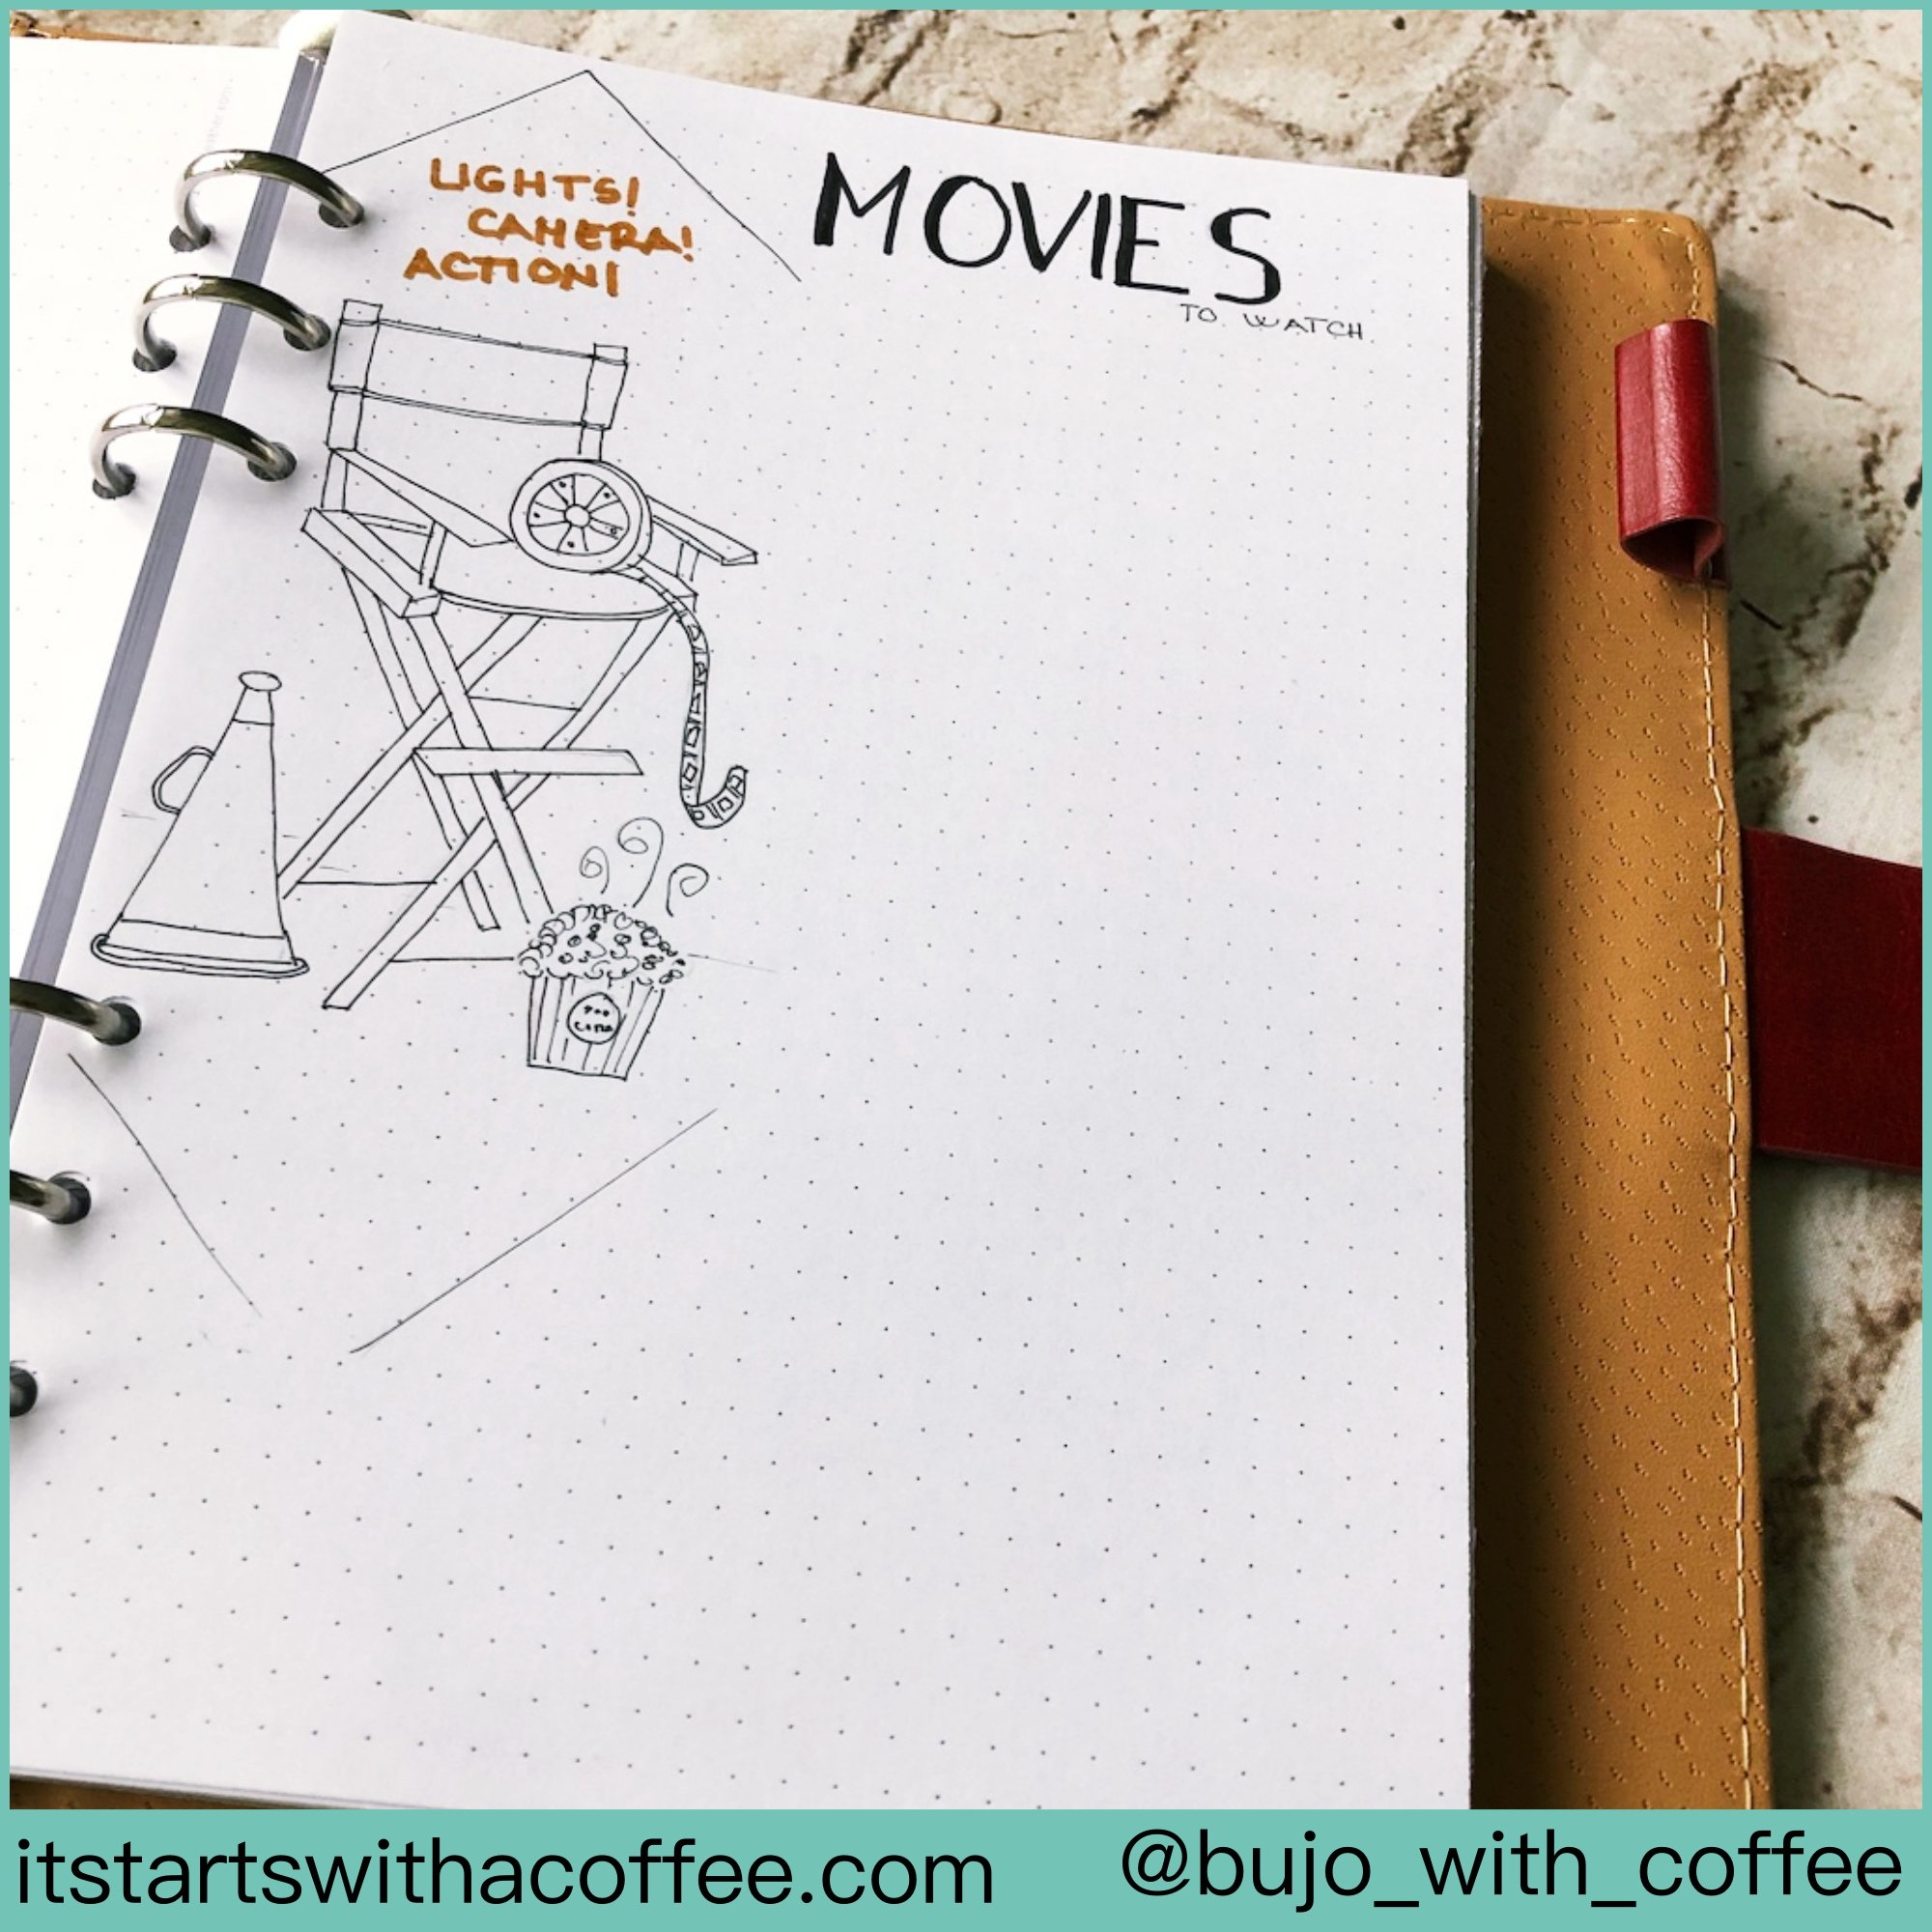 Director's chair outlined - itstartswithacoffee.com